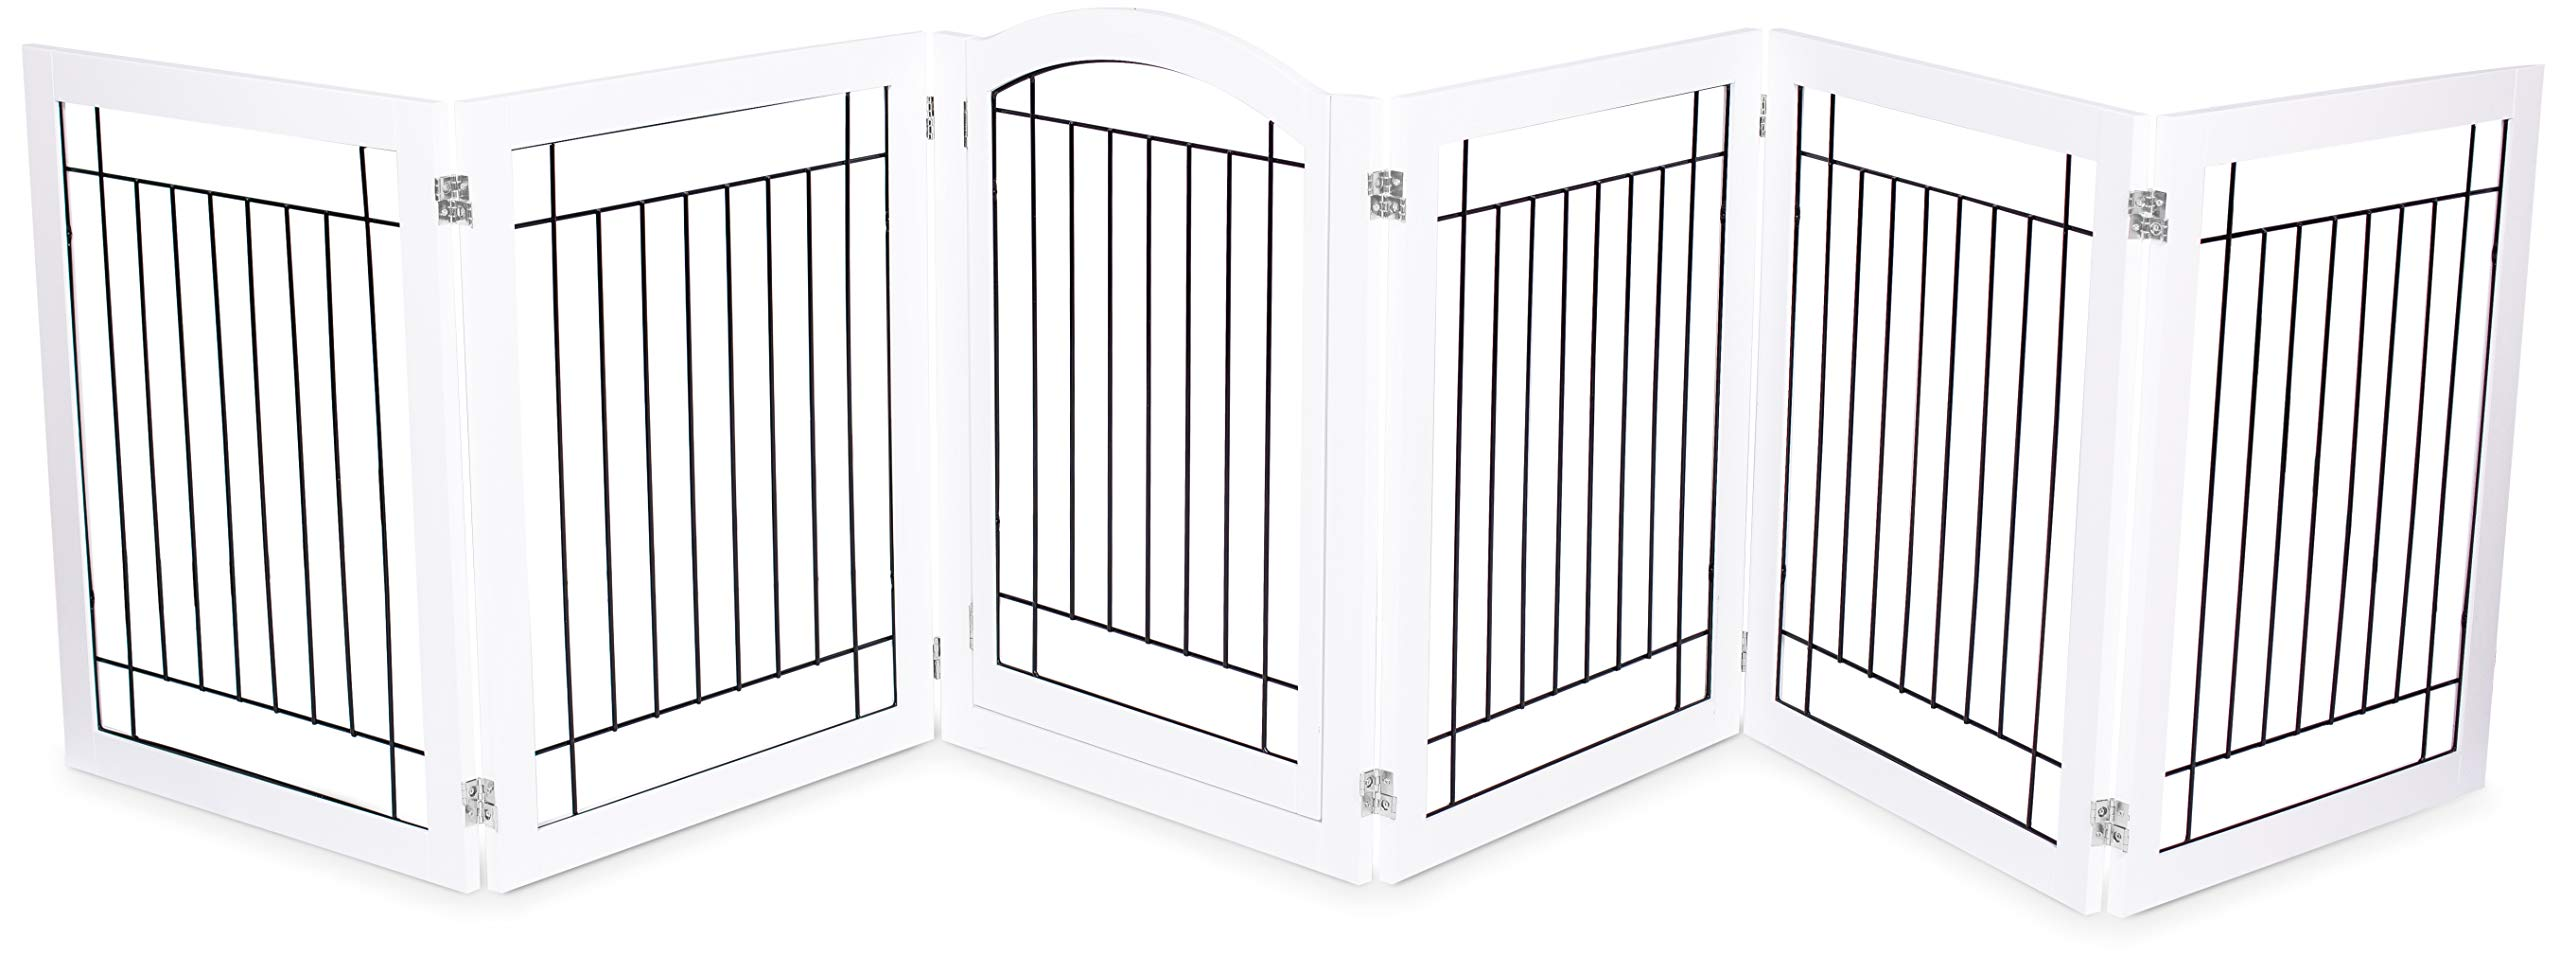 Internet's Best Indoor Dog Gate with Door   6 Panel   30 Inch Tall   Enclosure Kennel Pet Puppy Safety Fence Pen Playpen   Durable Wooden and Wire   Folding Z Shape Free Standing   White